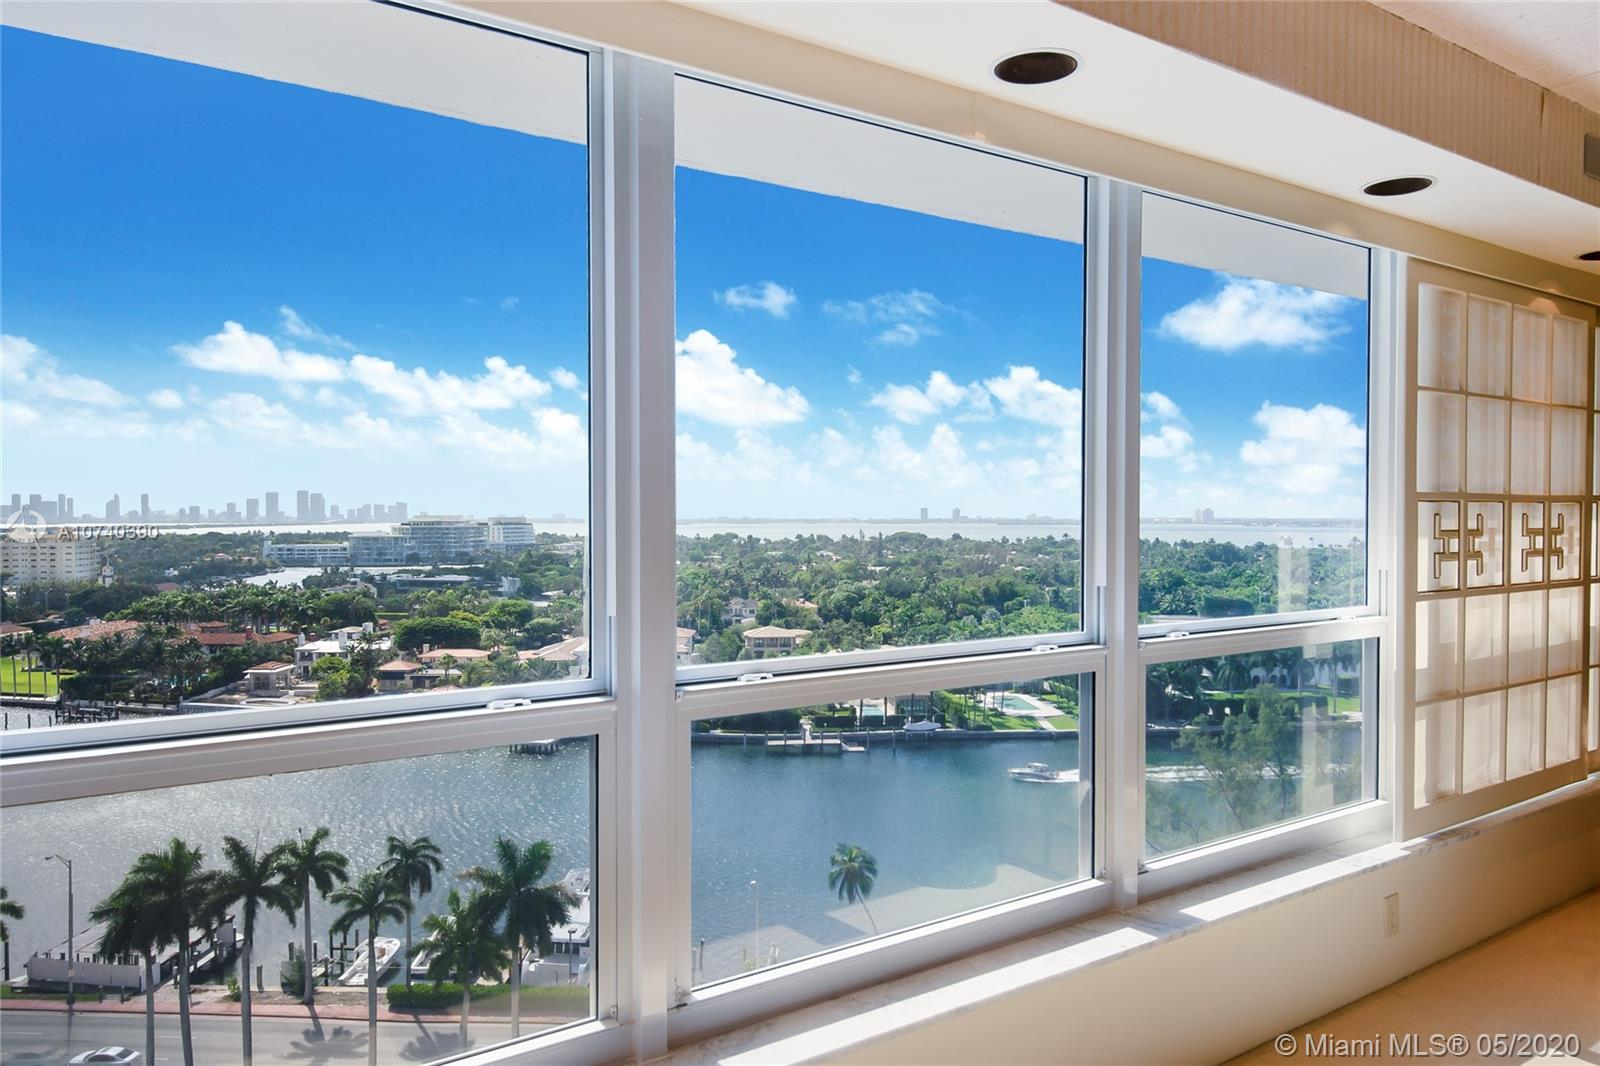 Back on the Market!! Seller Motivated!! Corner unit on the twelve floor at the Iconic Executive ocean front building in Millionaire's Row. Unit offers a superb view from every window. Expansive 1 bedroom 1.5 bathrooms 1470 square feet. Apartment was design in the 80's by designer Al Evans and featured in the Home and Design page of the Miami Herald in 1987. Looking for a new owner to make it their own. Unit can be sold together with a beautiful corner ocean/pool cabana listed at $240,000 please refer to MLS#A10740372. Seller willing to sell unit without the cabana. Building has Fitness Center, Beachfront Pool, 24 hour doorman, security. Phenomenal Location. Washer and Dryer in the unit. Call listing agent for showings.